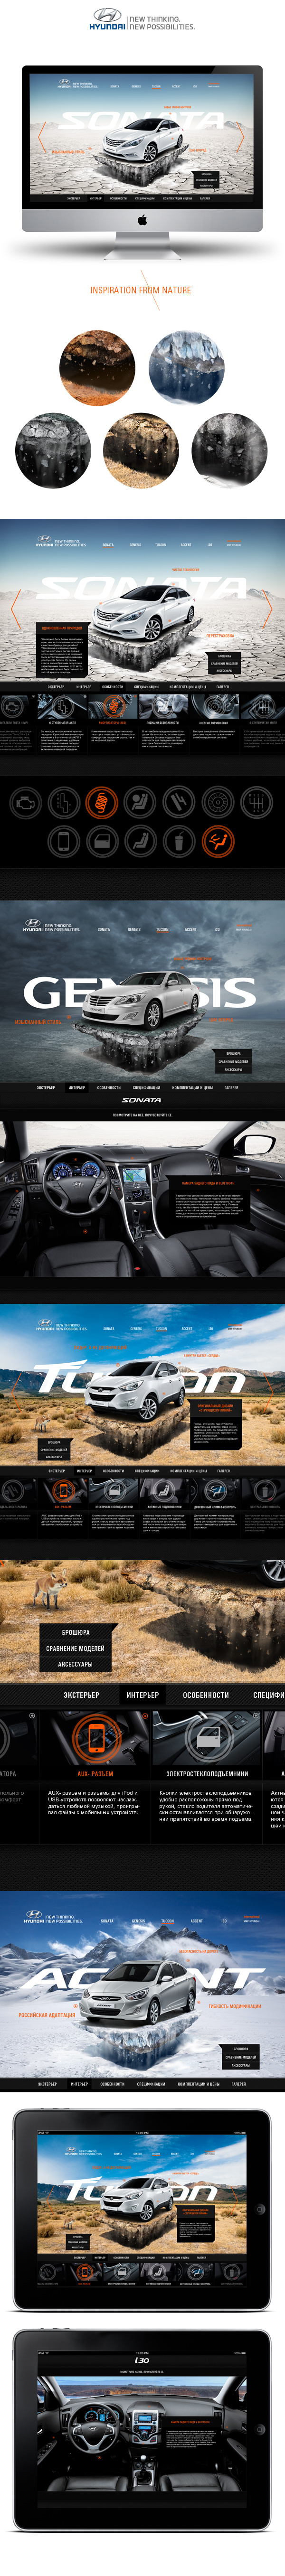 Hyundai on Web Design Served